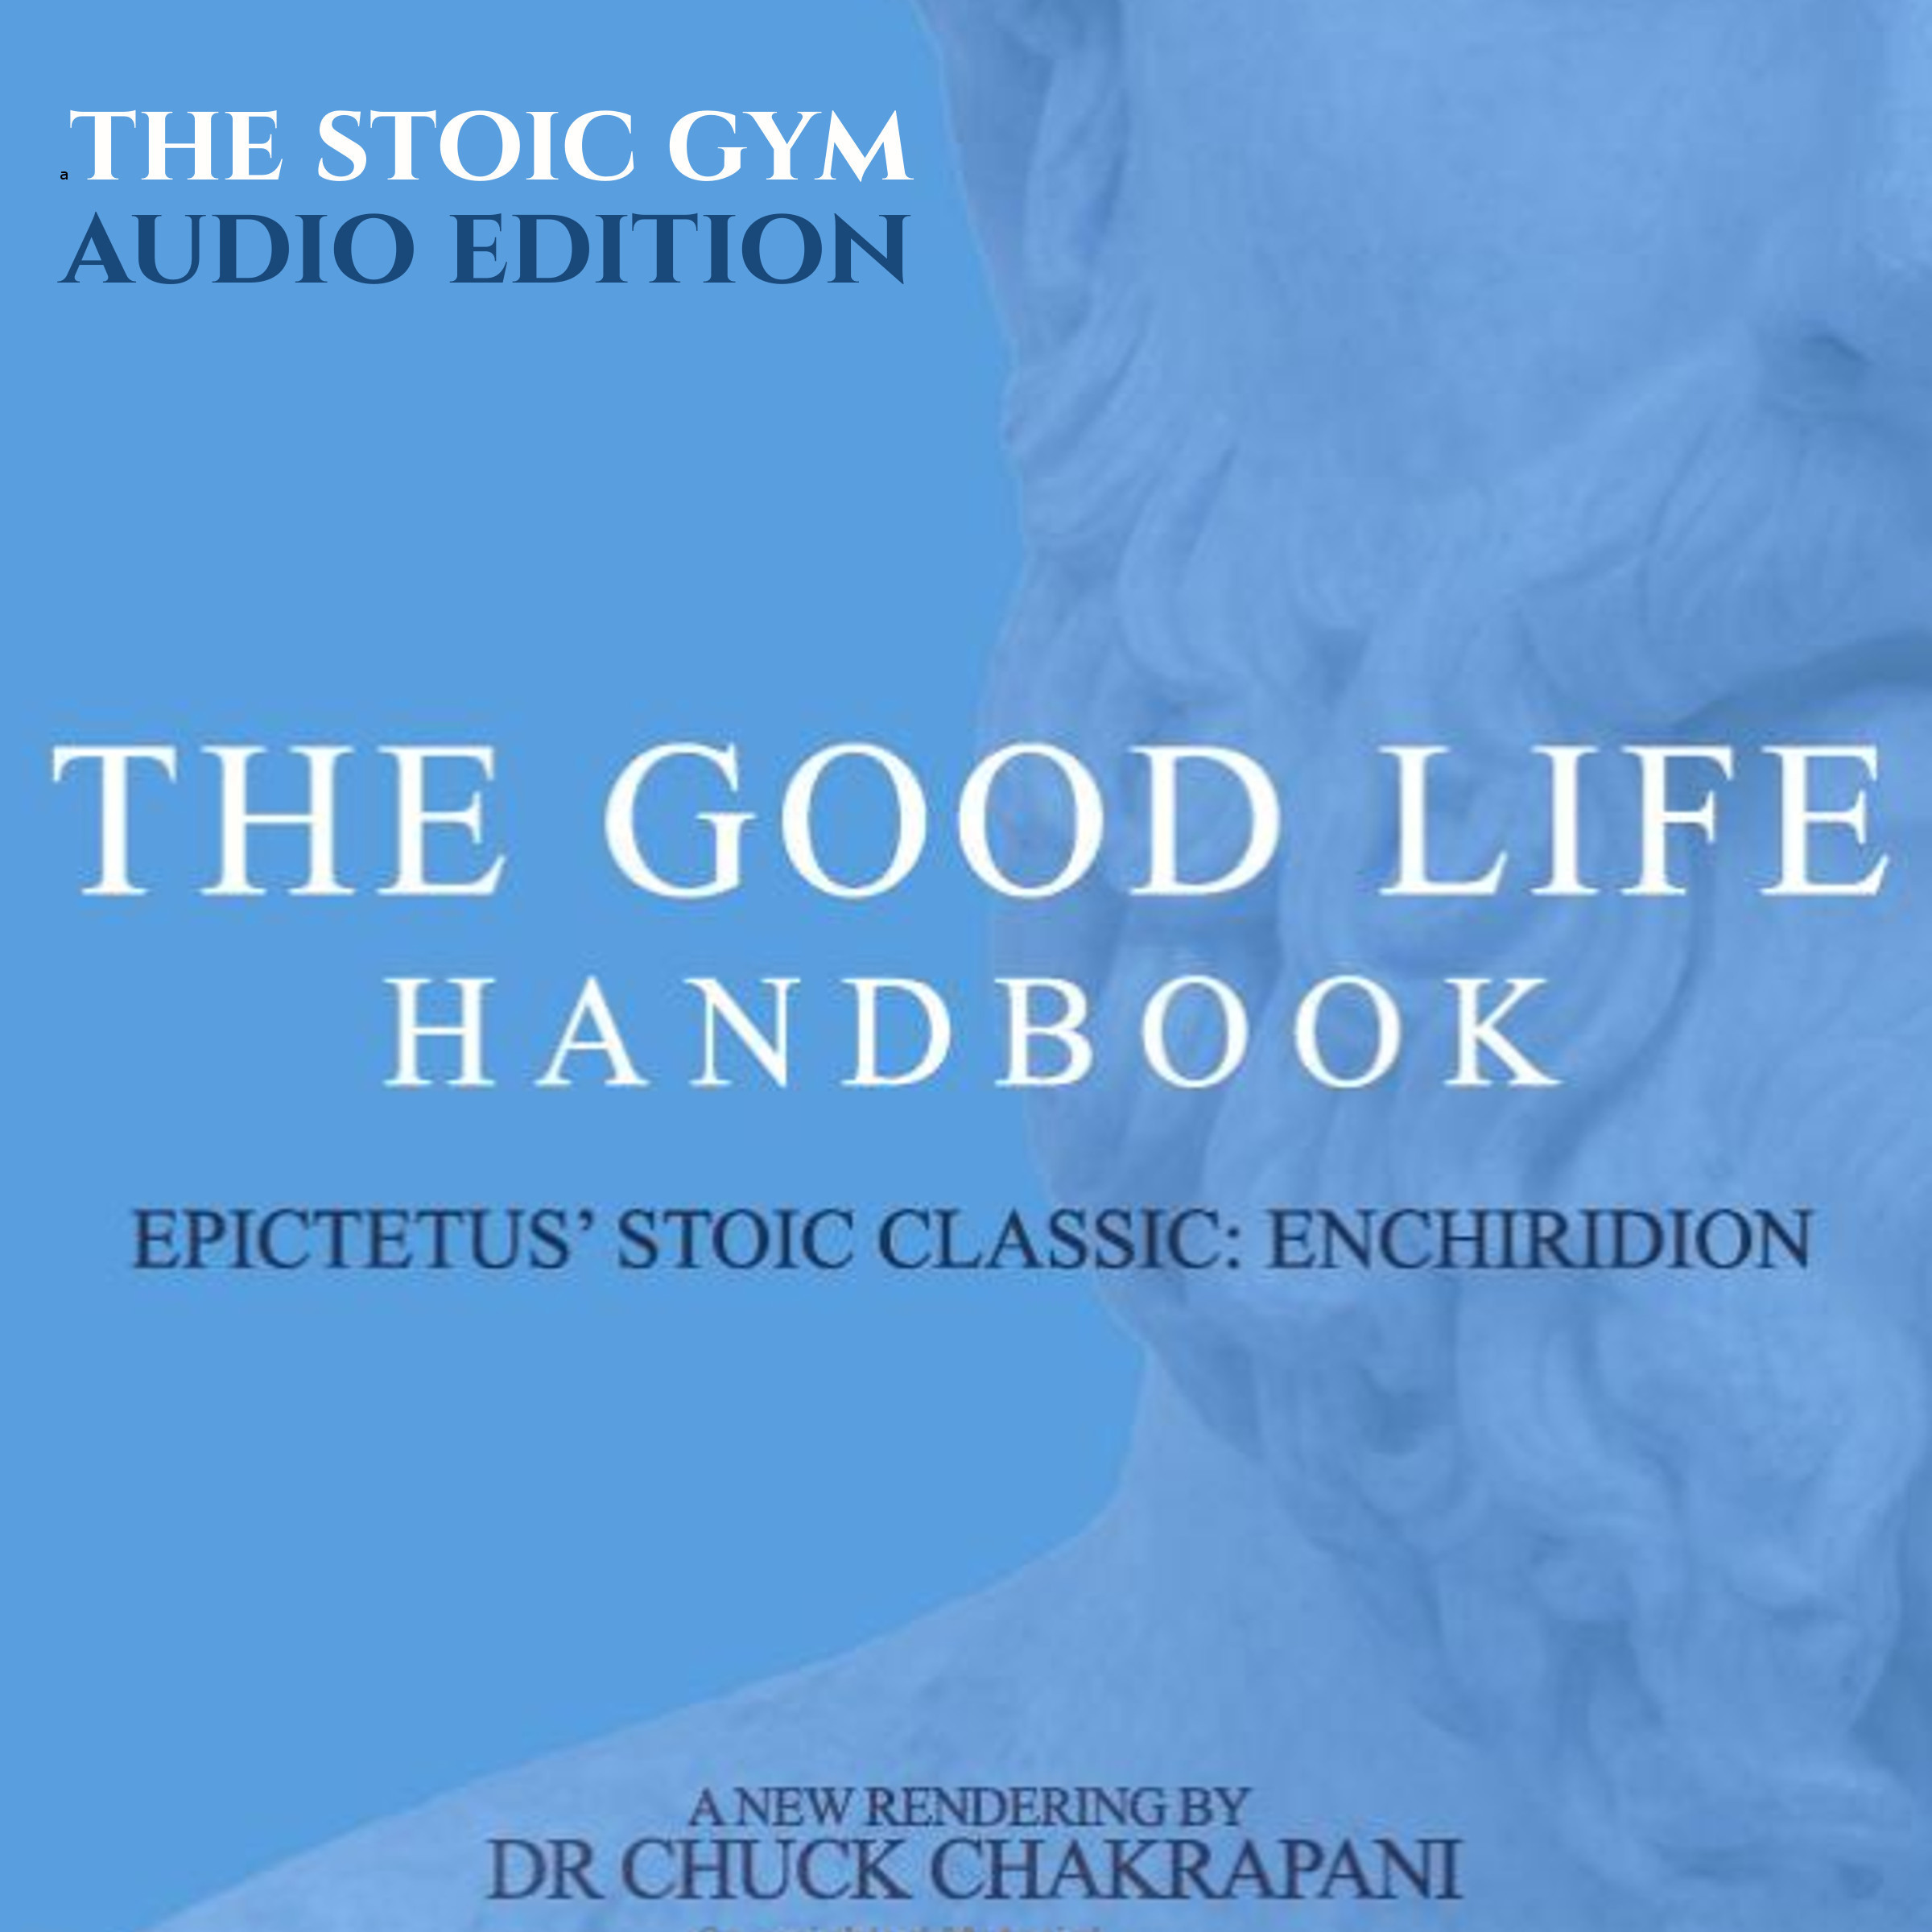 epictus handbook Epictetus is vastly underrated as far as philosophers go i got the loeb classical edition with books 1-4 plus enchiridion over 10 years ago and it's been the best.